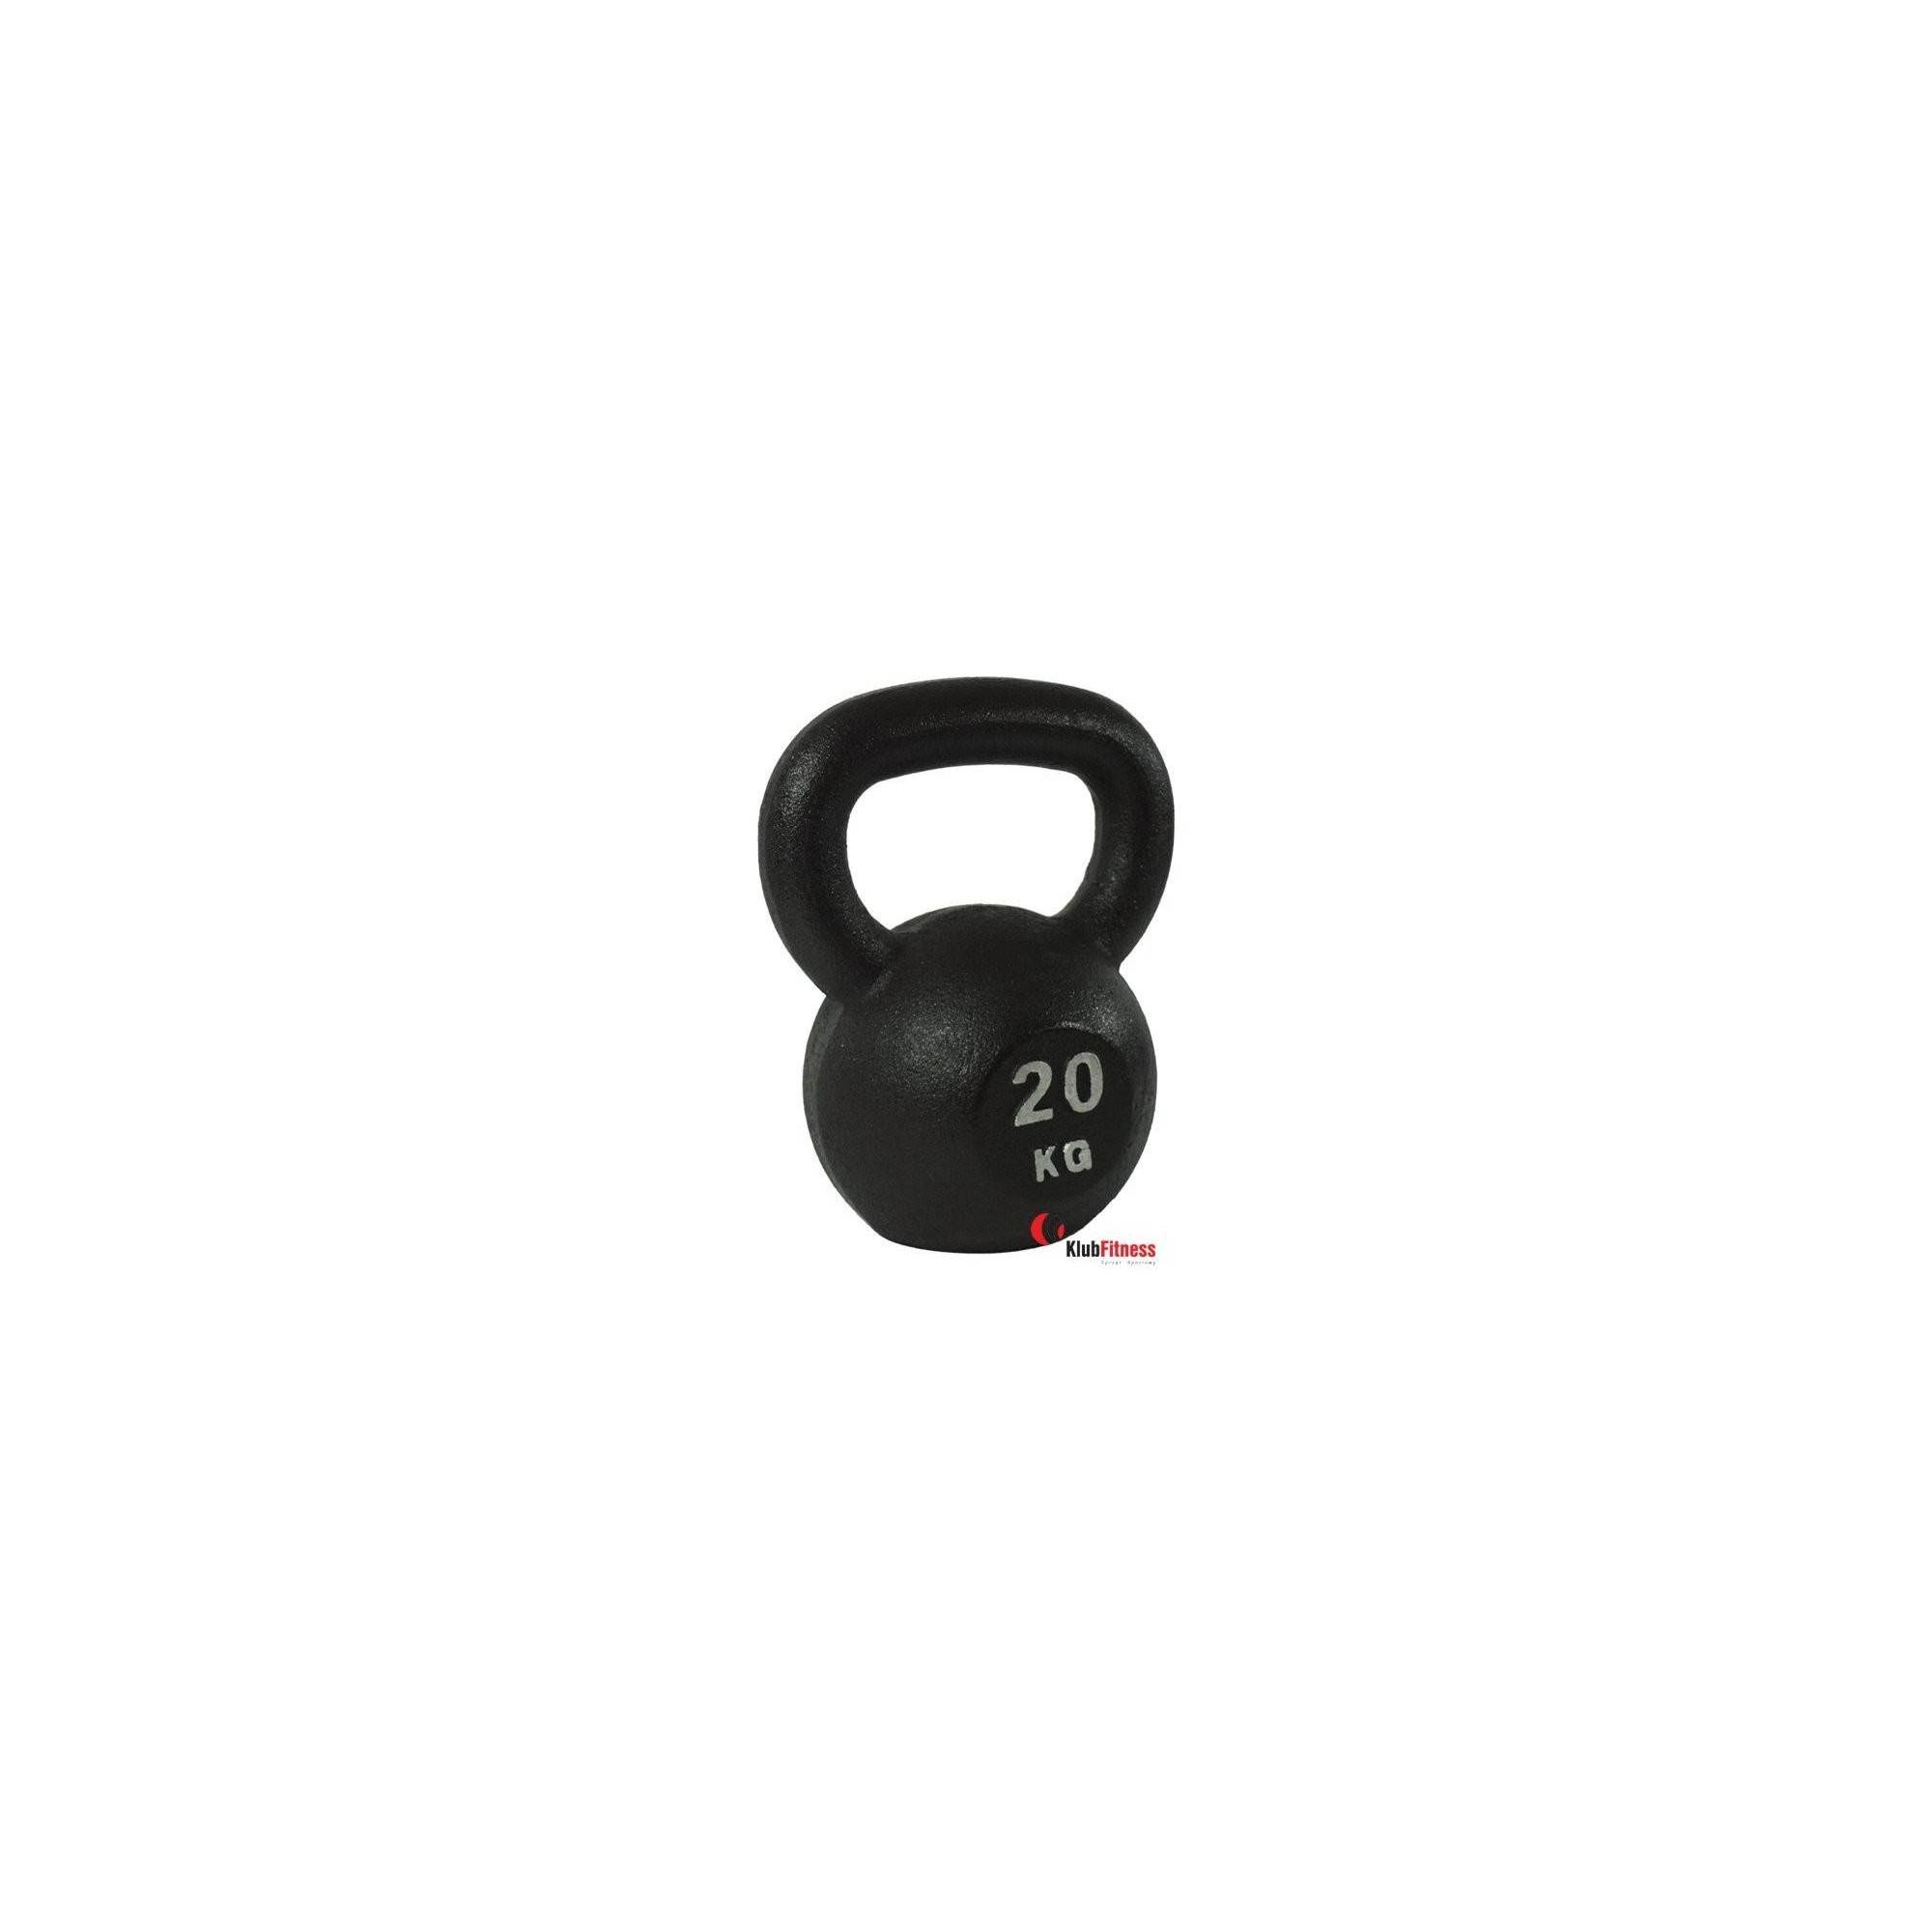 Hantla żeliwna BODYSOLID KETTLEBELL 20kg czarna,producent: BODY-SOLID, photo: 1